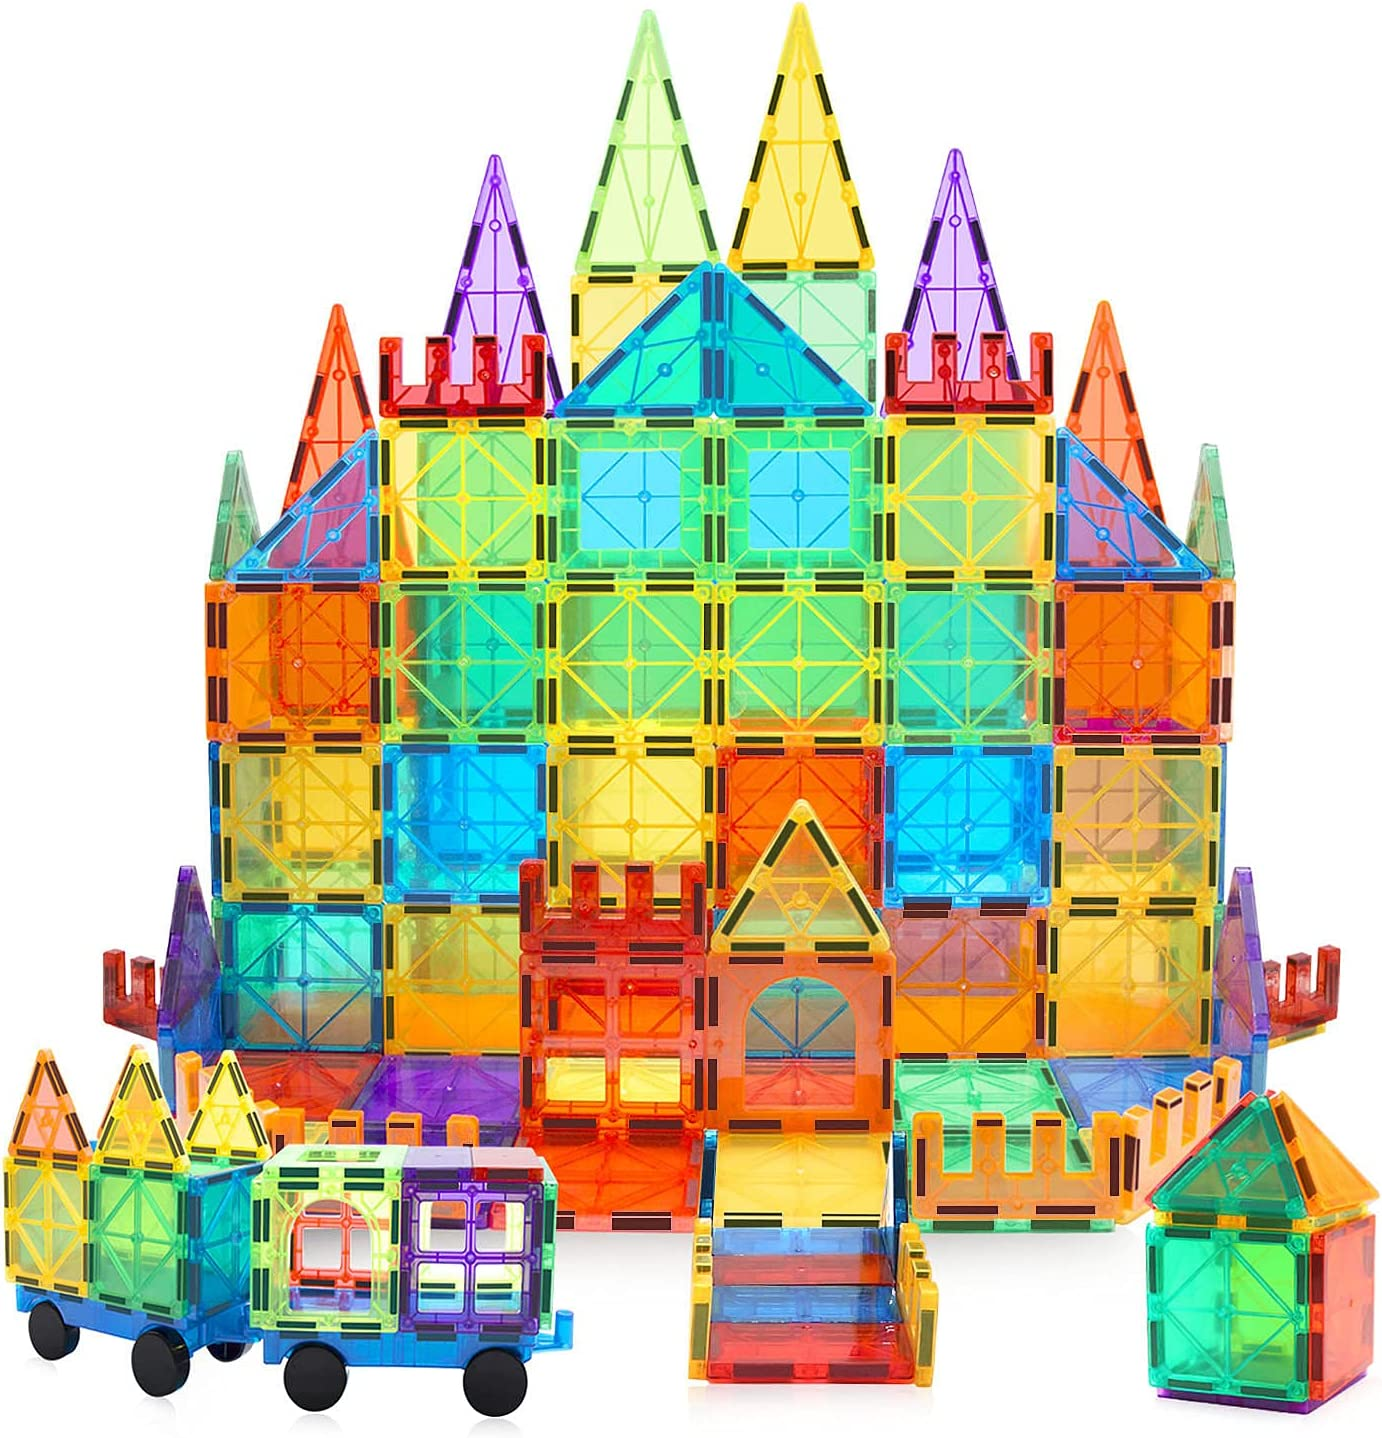 MagHub Magnet Toys Magnetic Tiles 85 Bloc Beauty products Max 50% OFF Building PCS